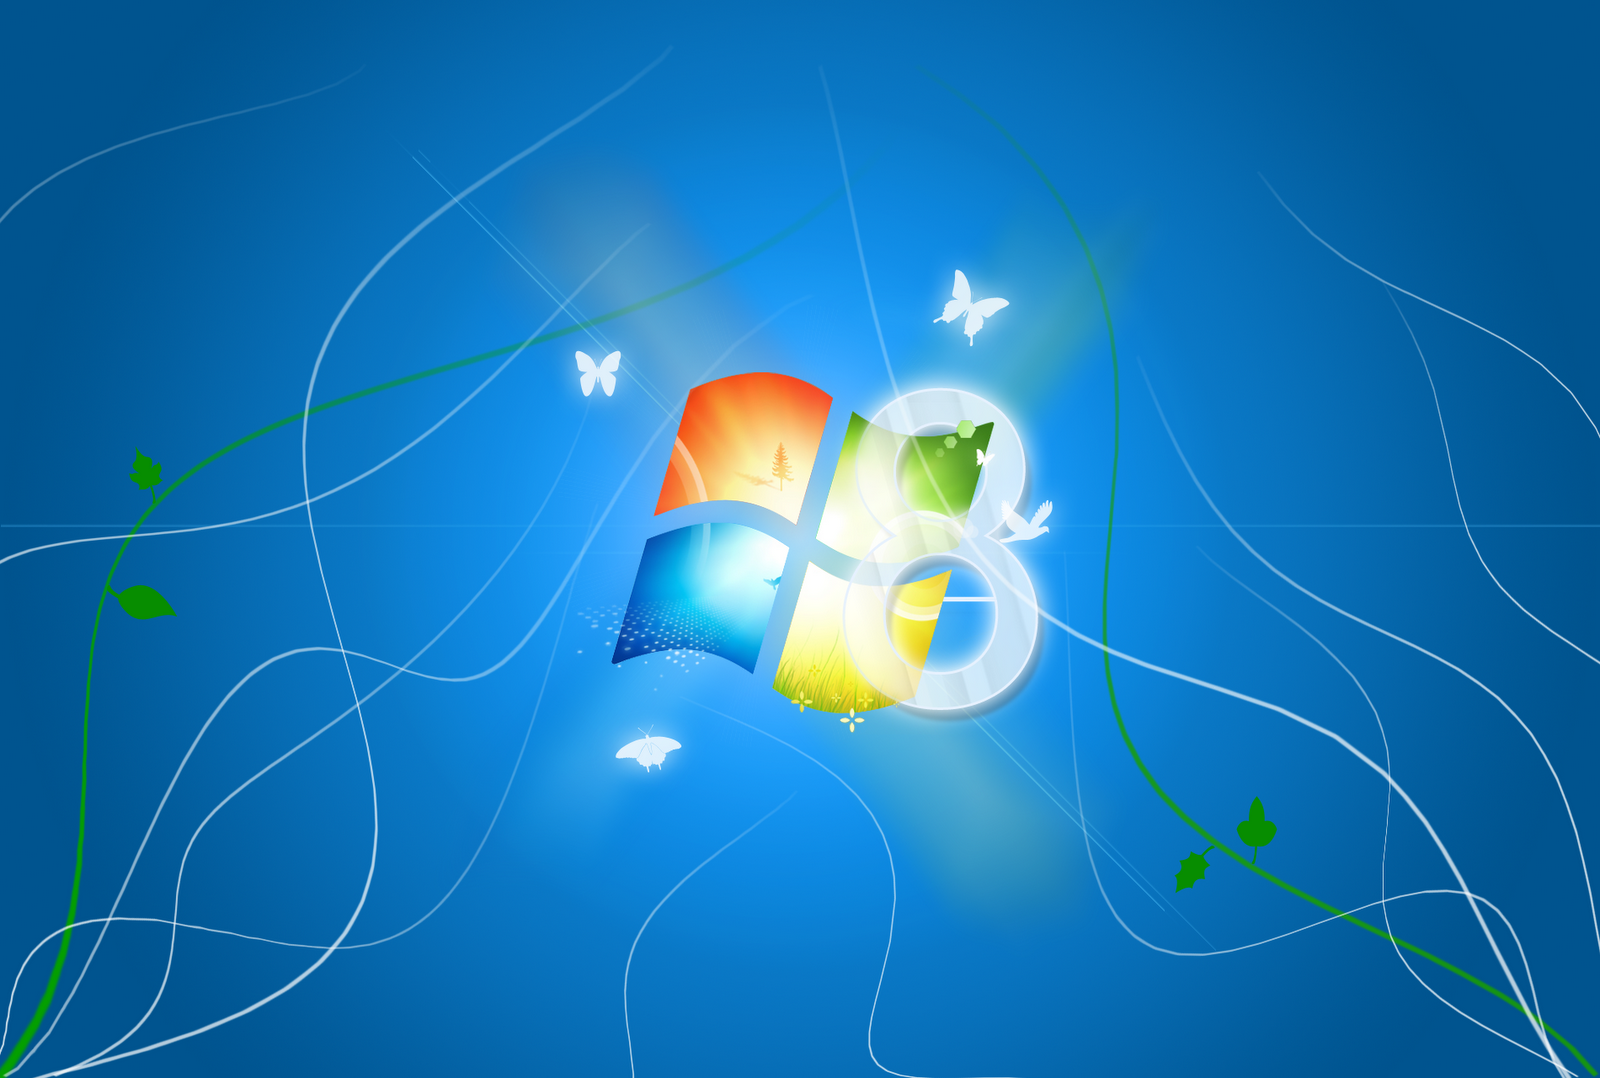 Windows 8 HD Logo Wallpaper